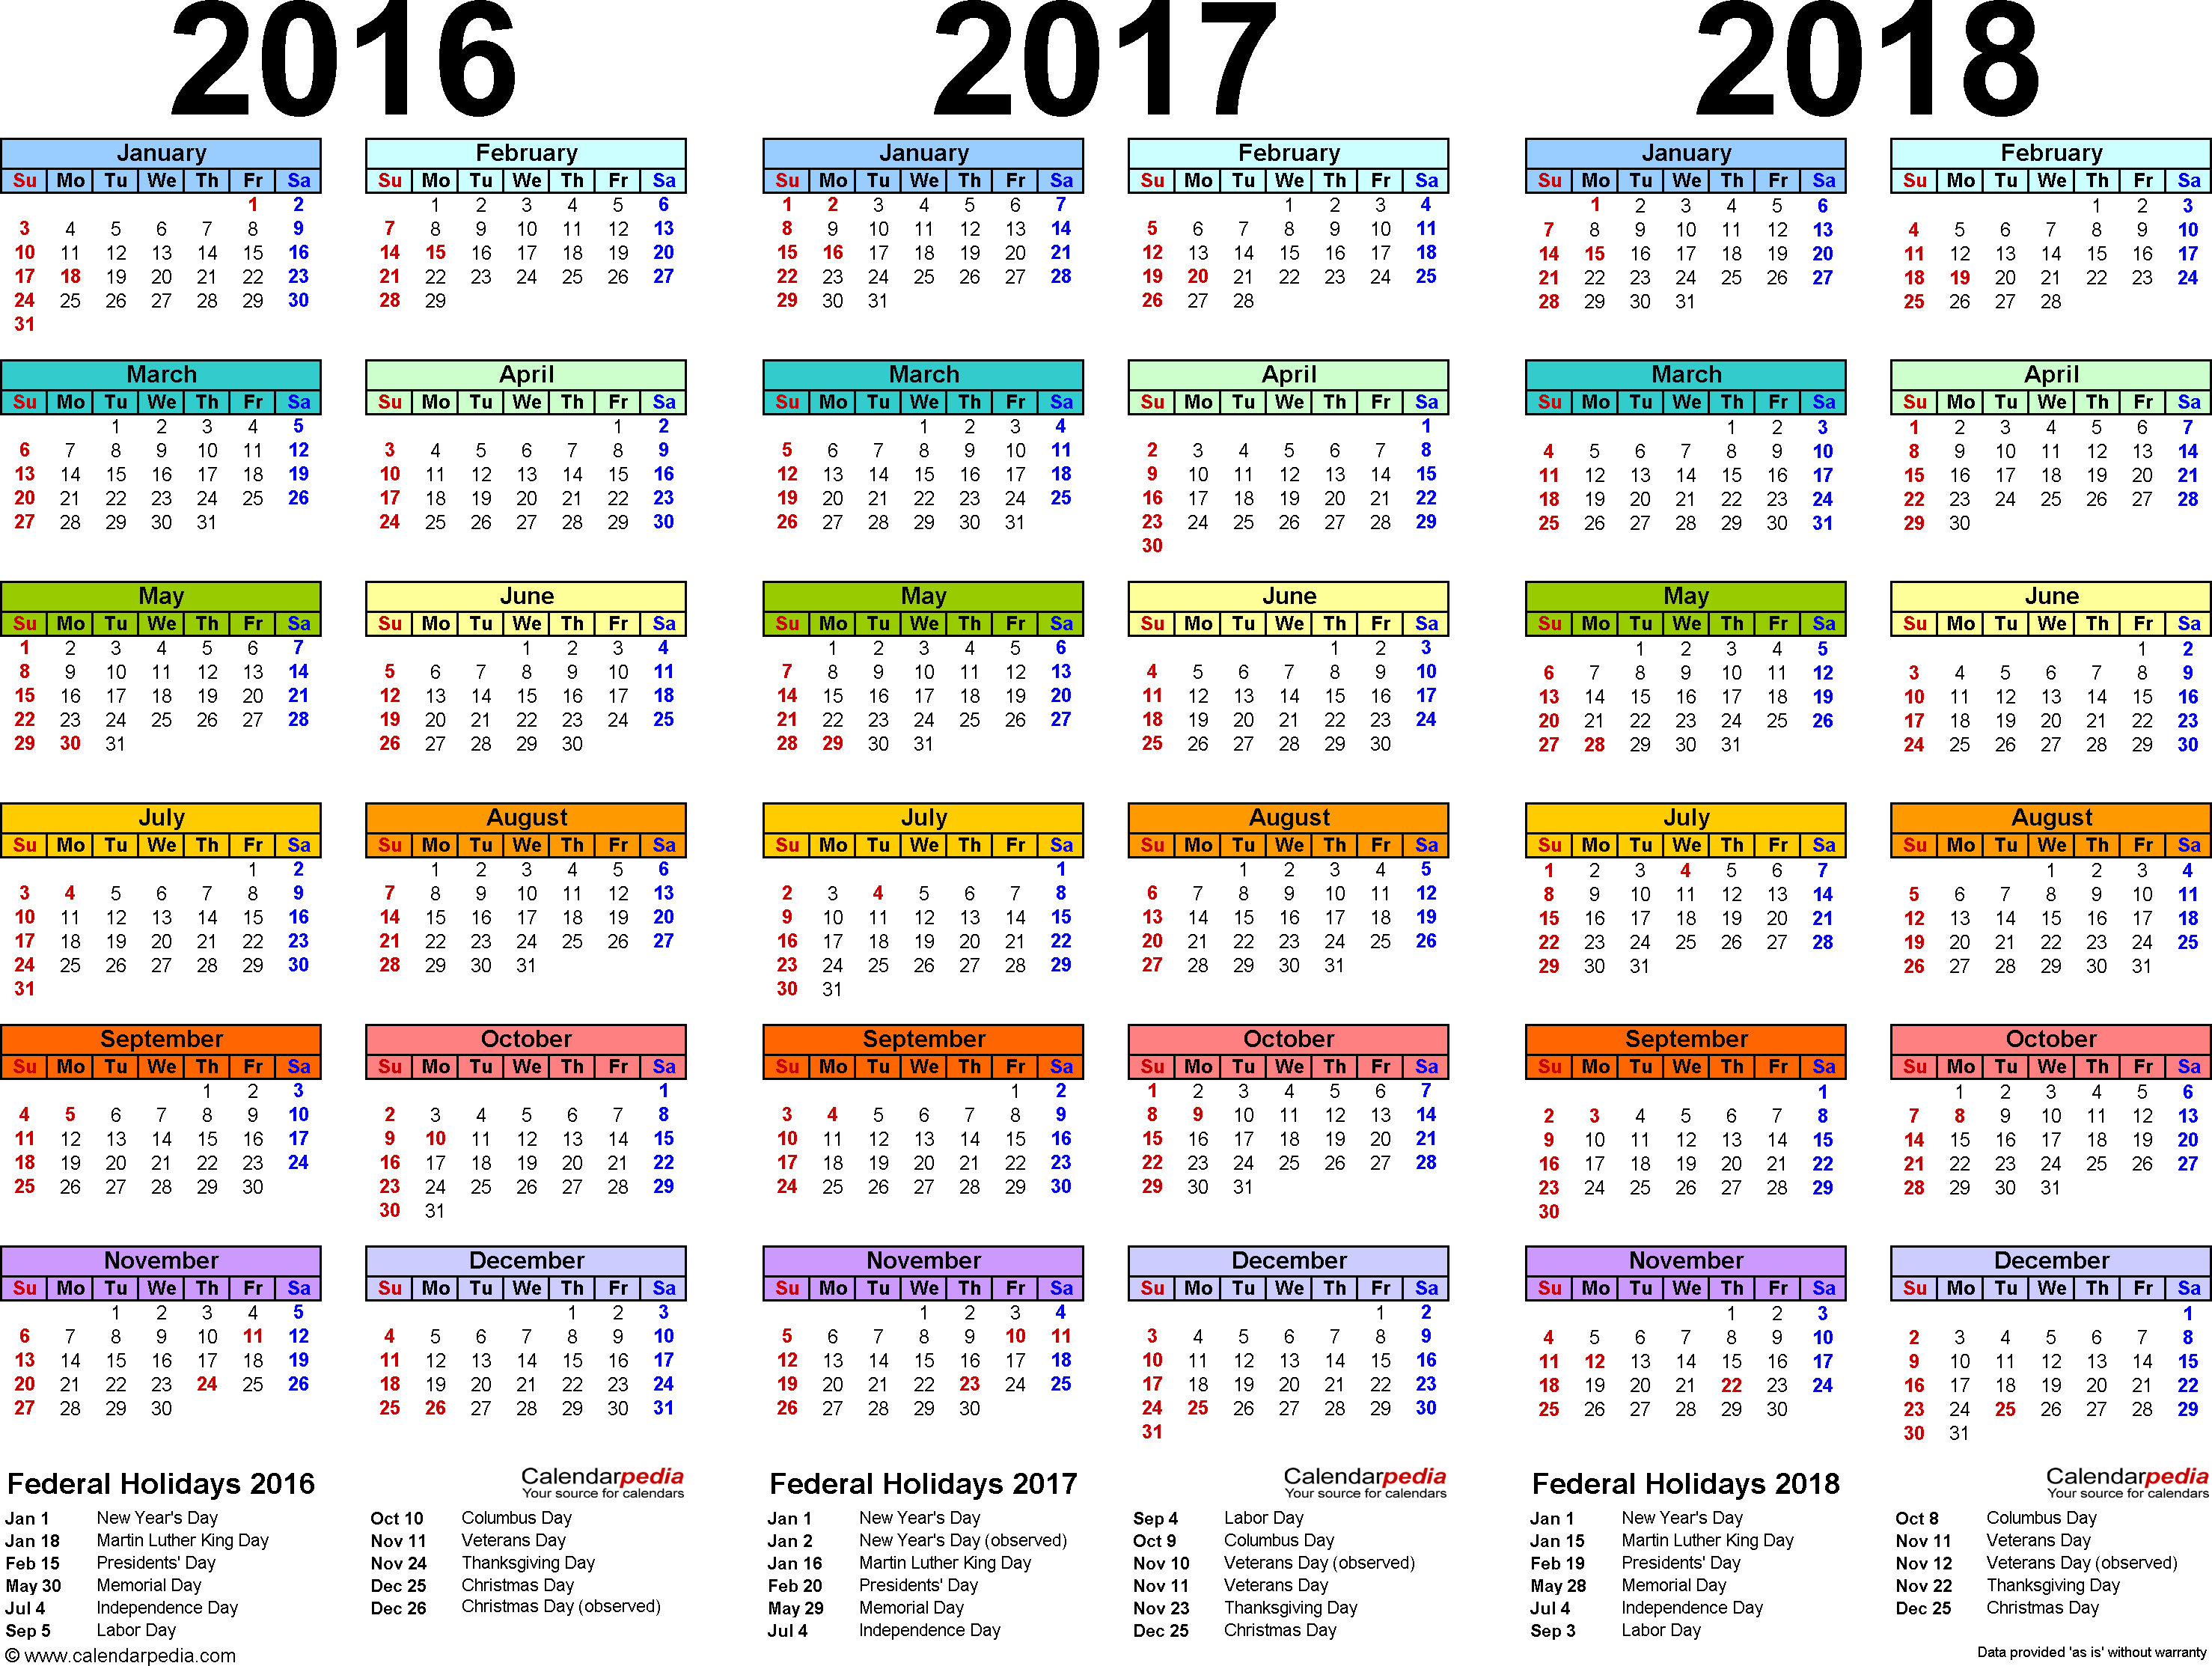 Template 1: Word template for three year calendar 2016-2018 (landscape orientation, 1 page, in color)